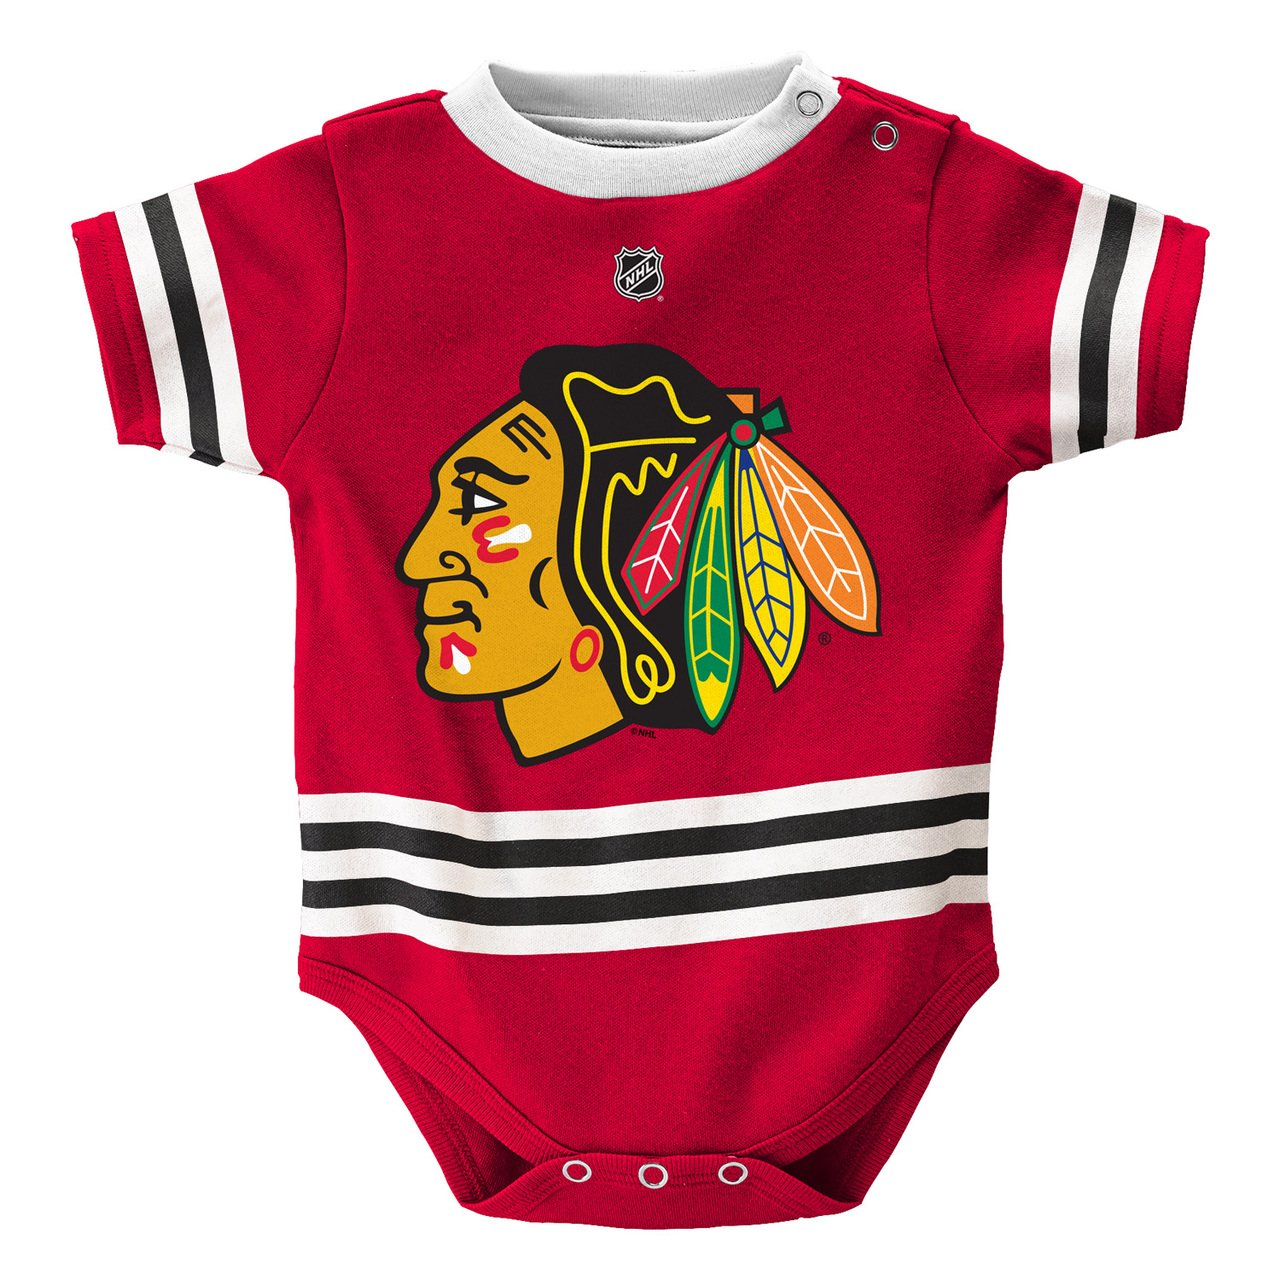 low priced 69d54 1eb7f Outerstuff Chicago Blackhawks Baby/Infant Hockey Jersey Style Creeper